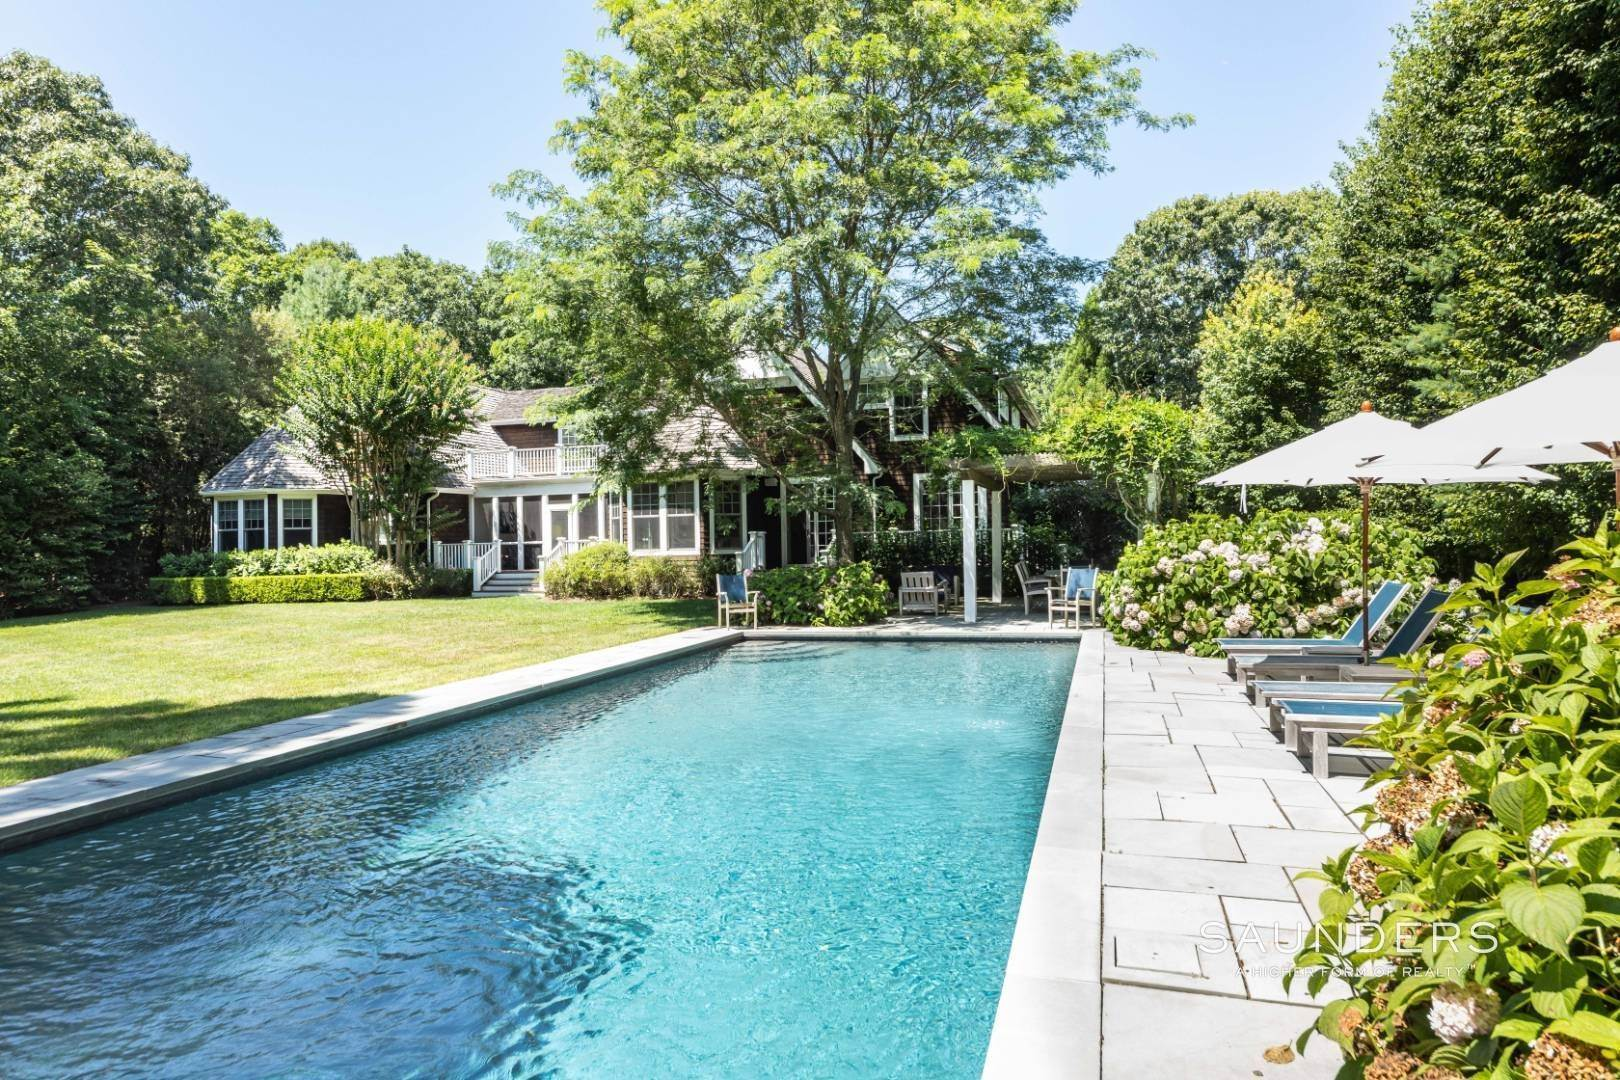 23. Single Family Homes for Sale at Wainscott South Traditional Near Beach Lane 10 Merriwood Drive, Wainscott, East Hampton Town, NY 11975